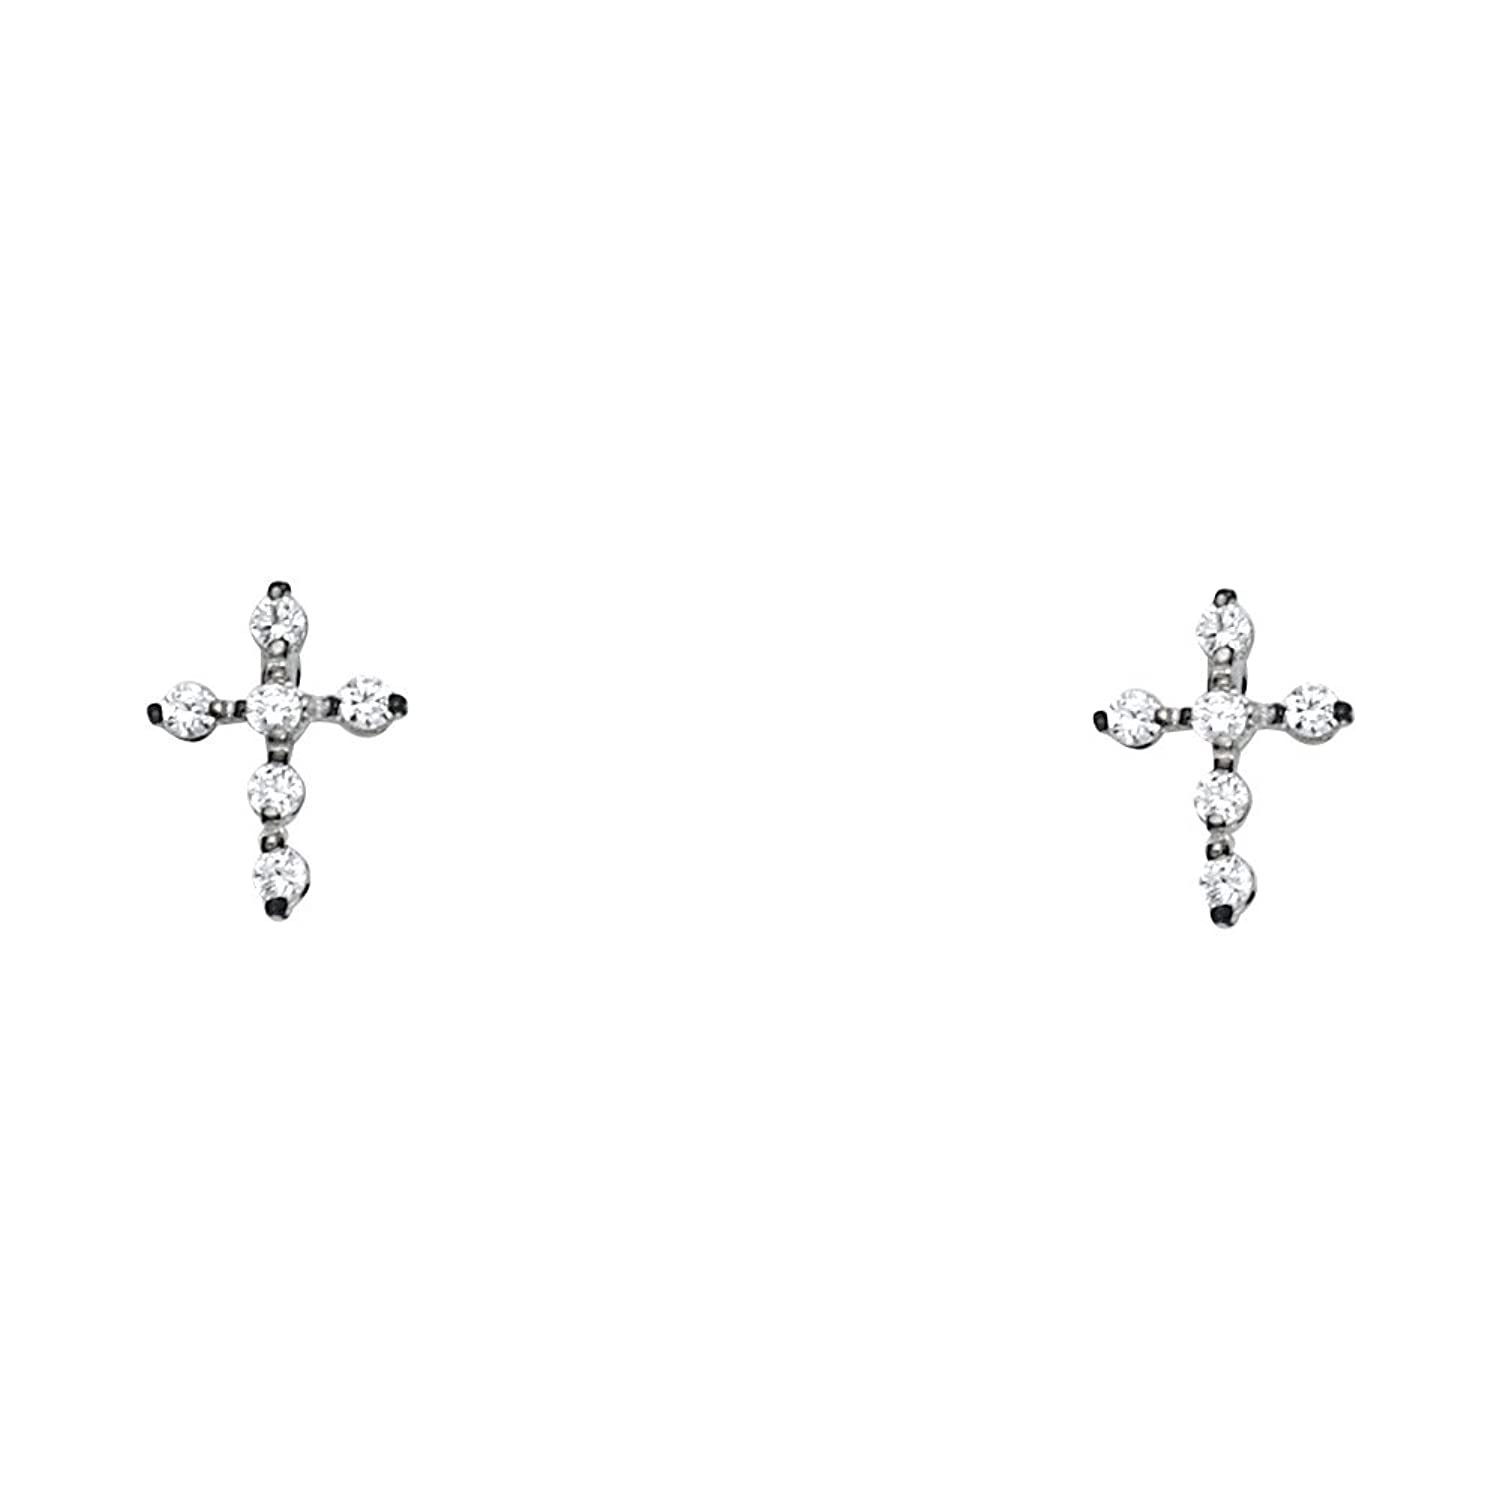 14k Yellow OR White Gold Cross Stud Earrings with Screw Back